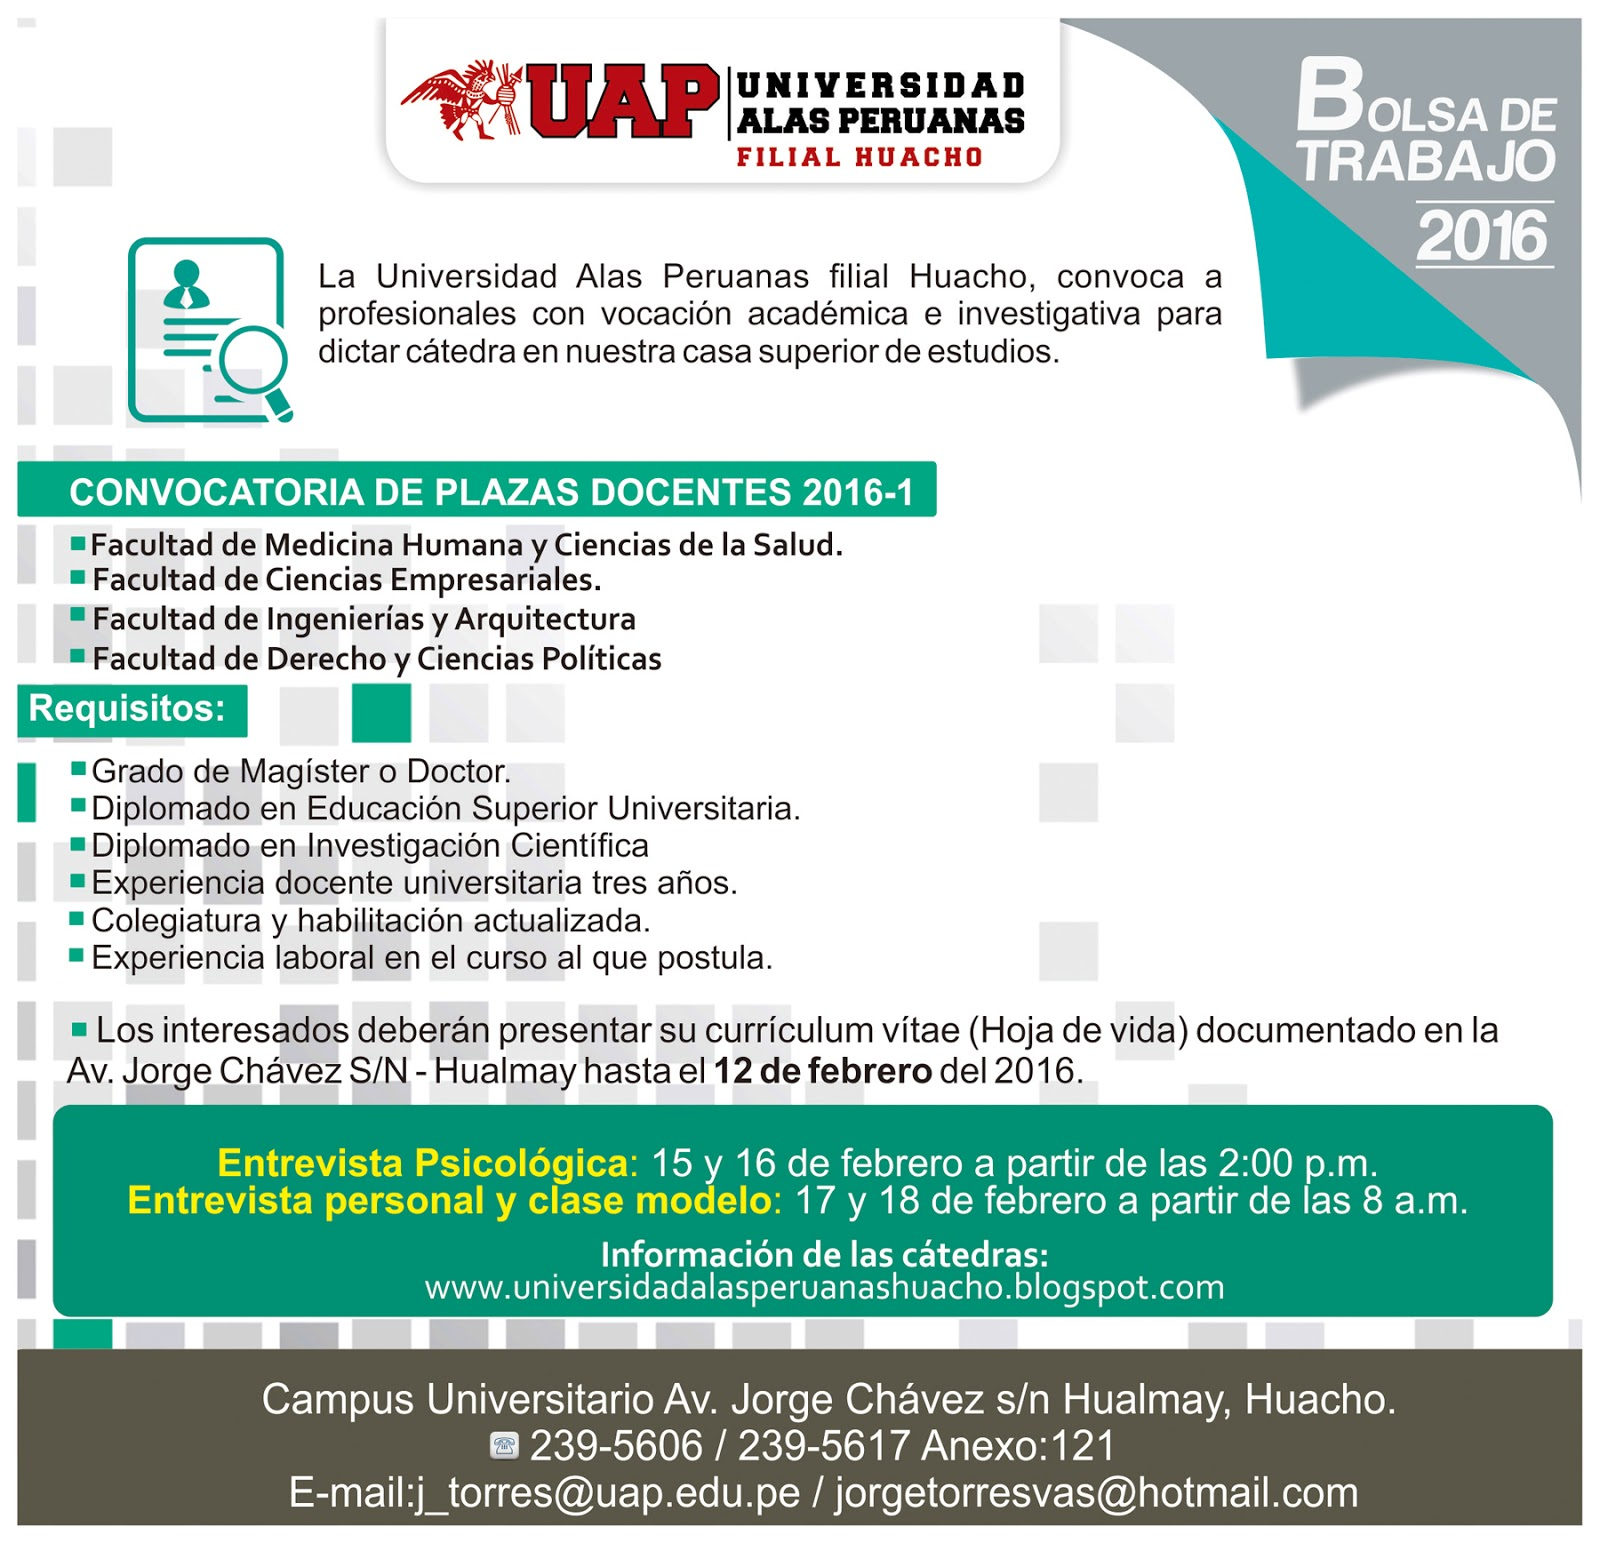 Universidad alas peruanas filial huacho convocatoria de for Convocatoria para plazas docentes 2016